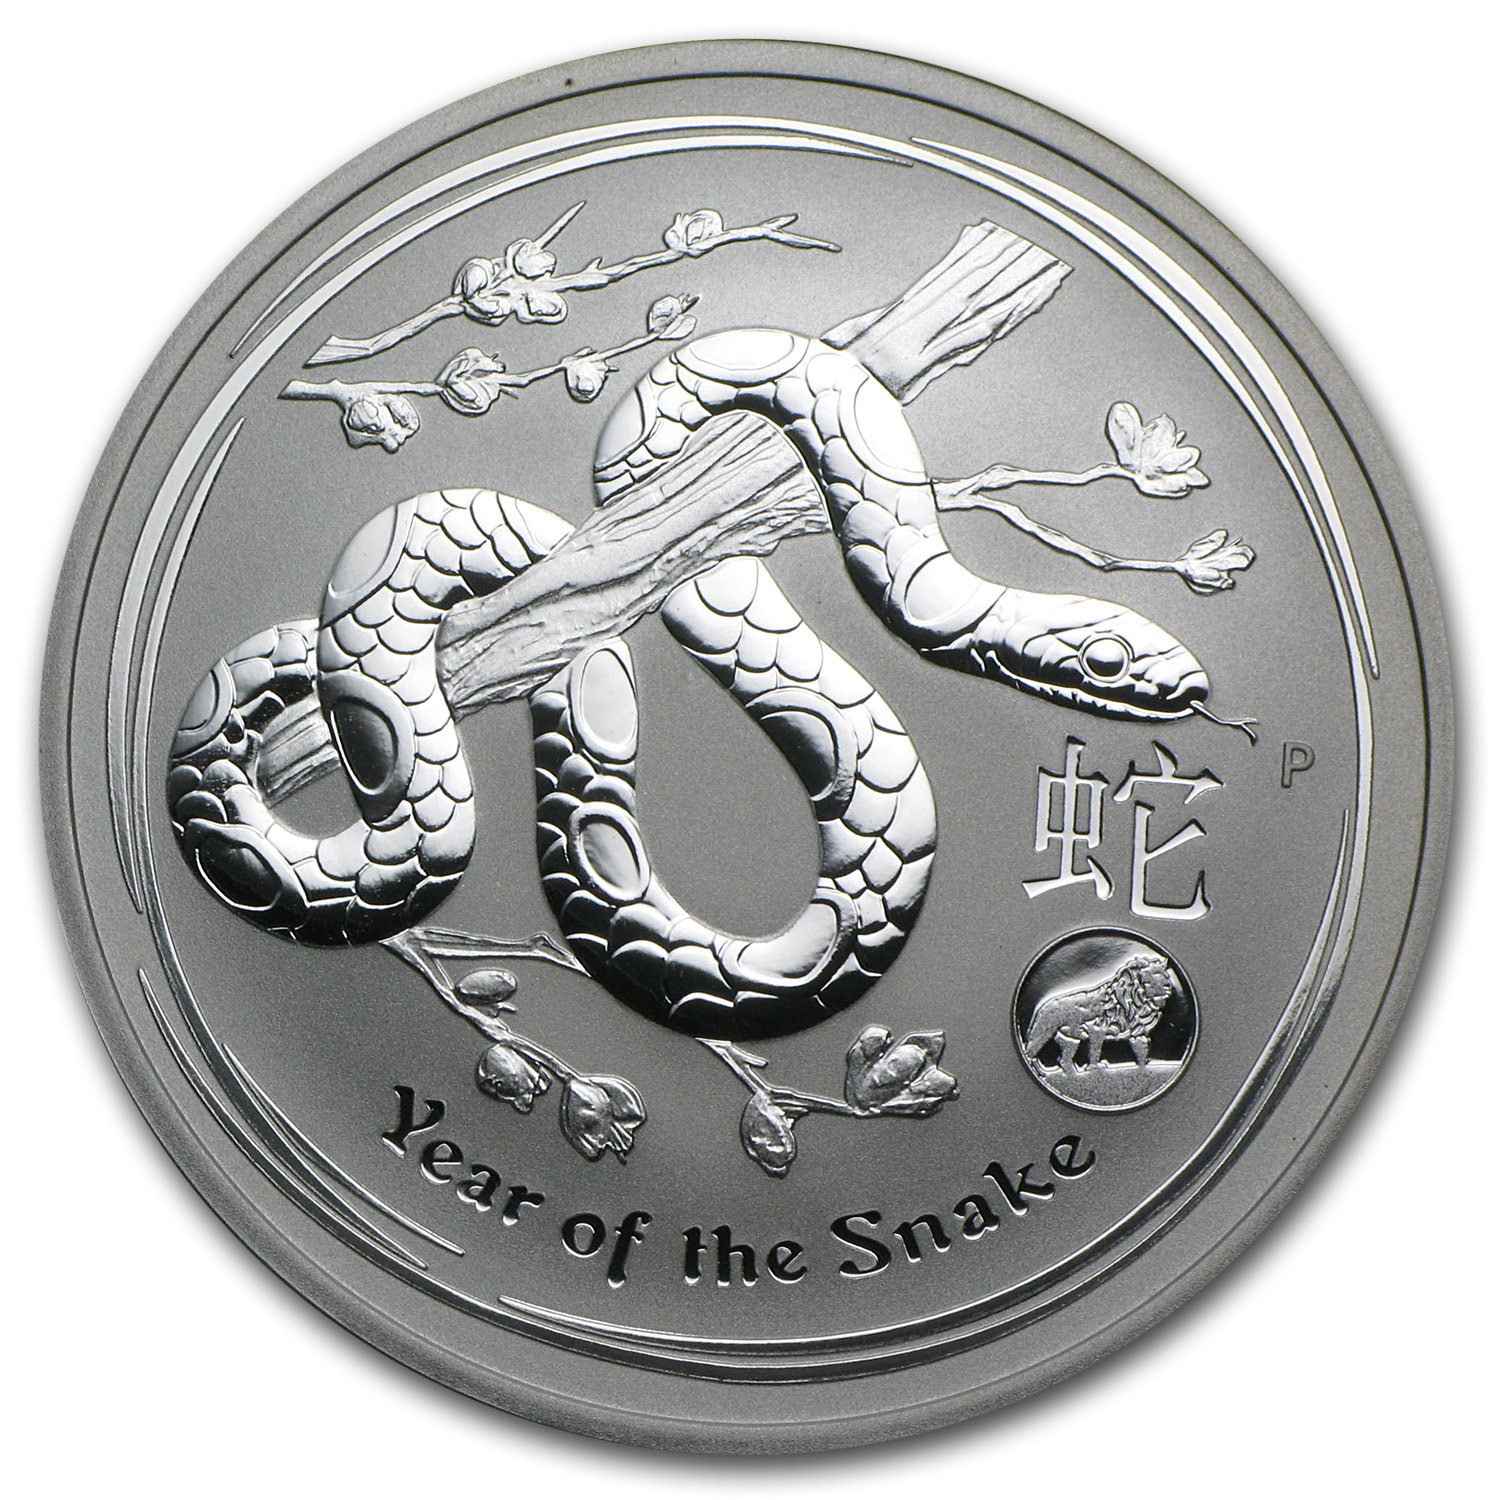 2013 Australia 1 oz Silver Year of the Snake BU (Lion Privy)